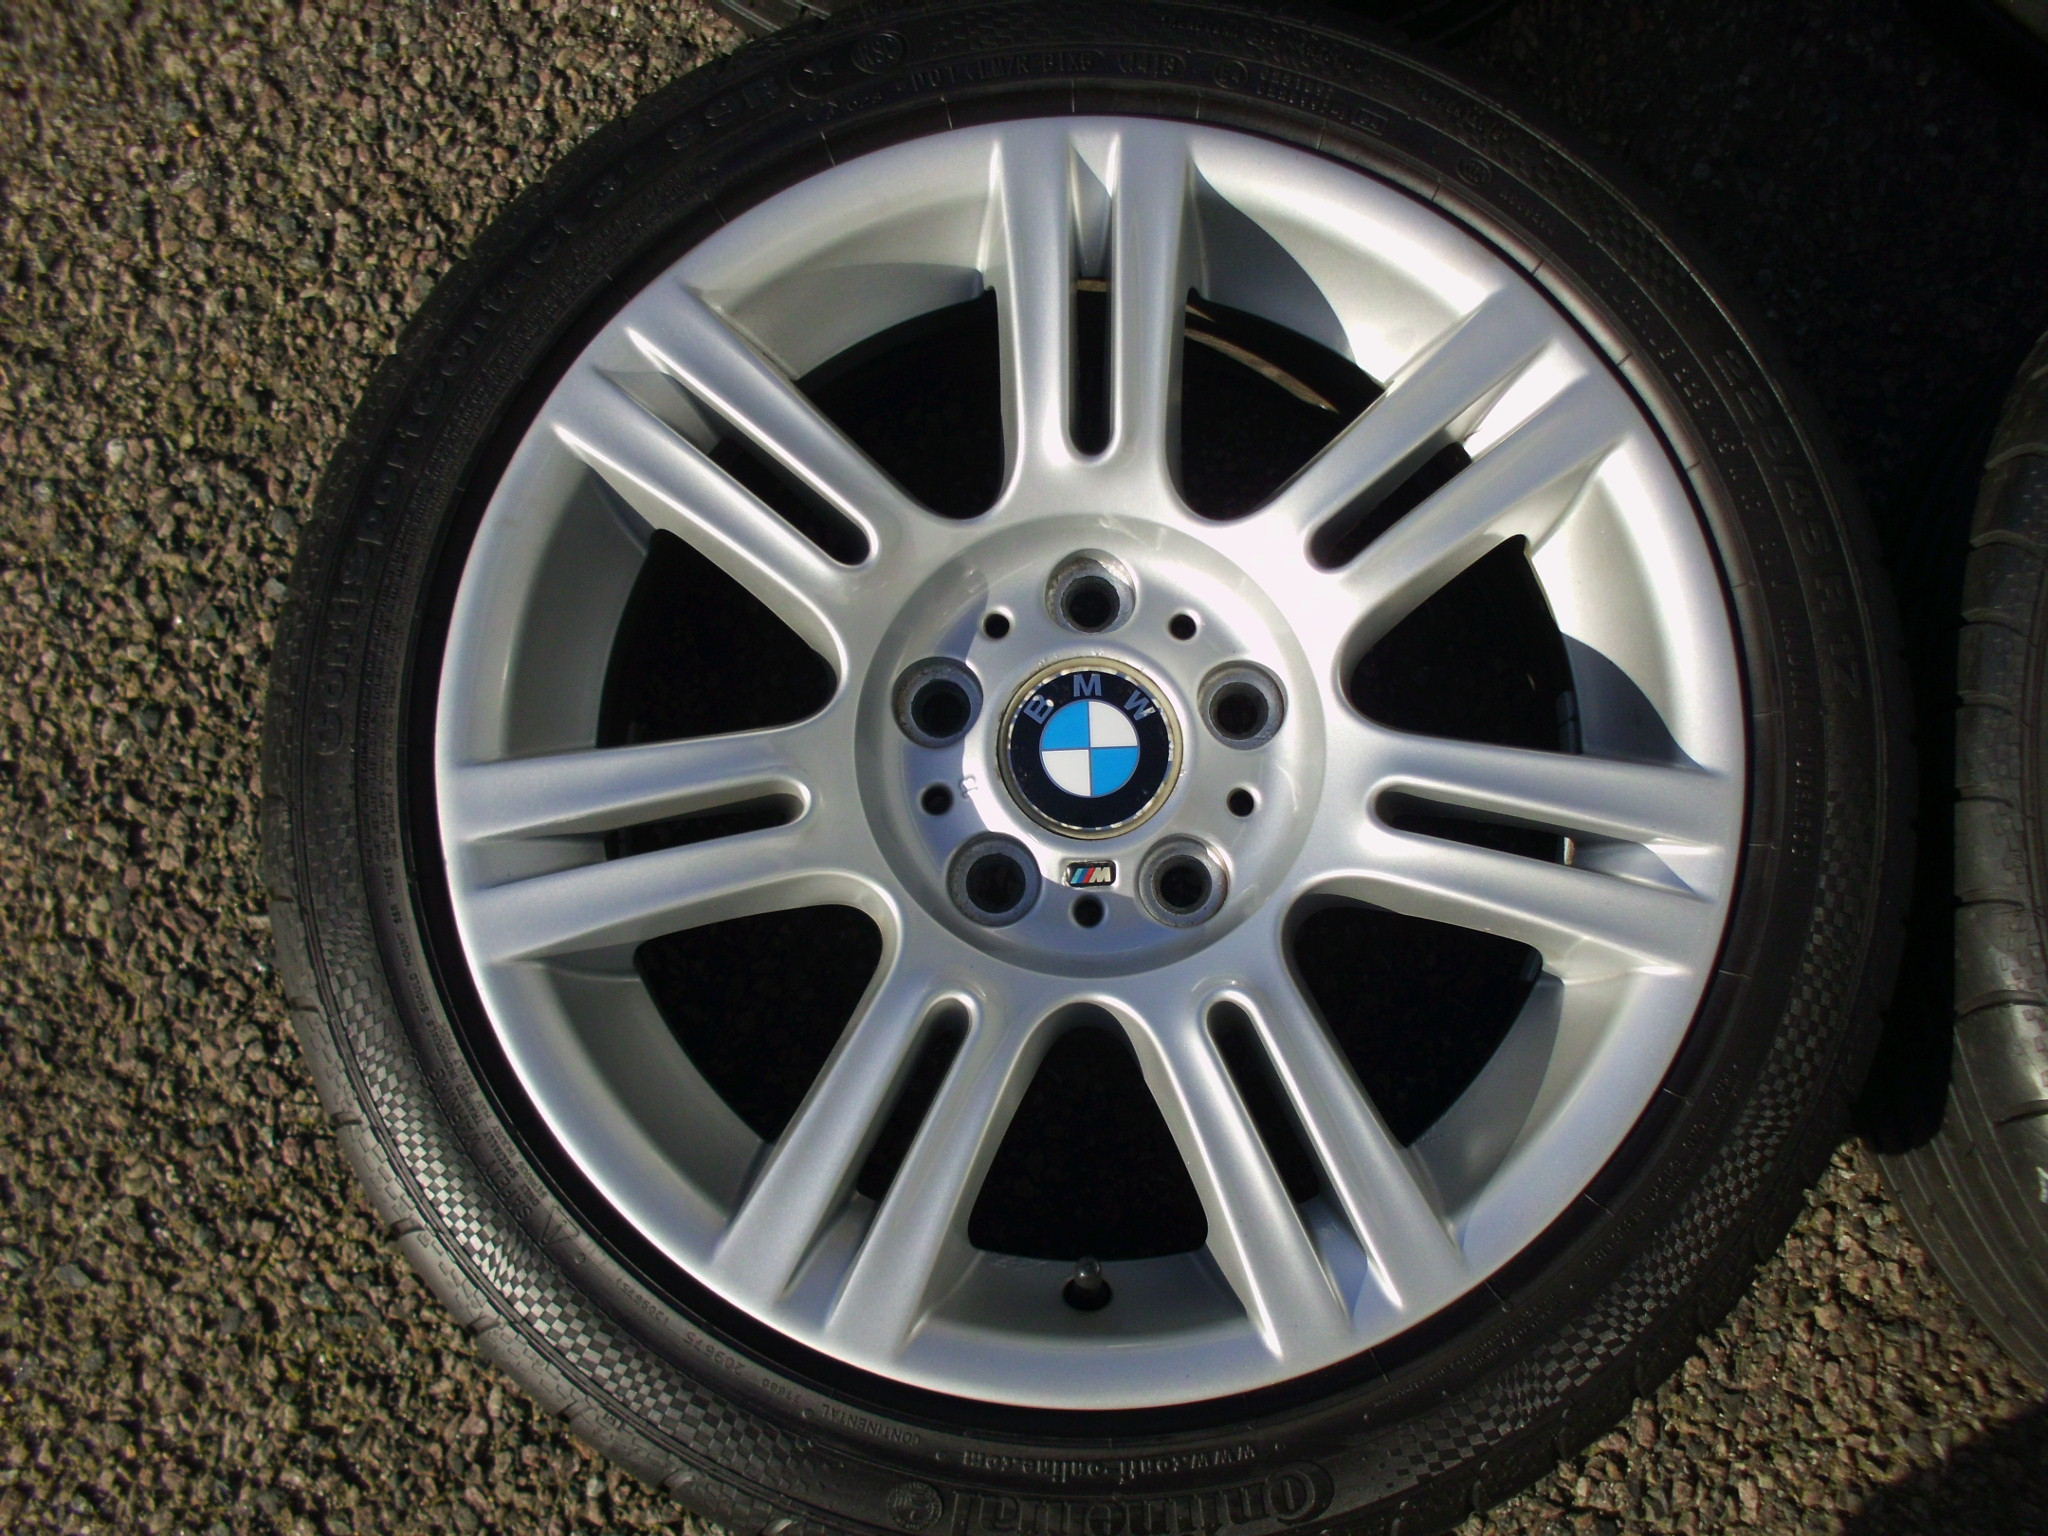 "USED 17"" GENUINE BMW STYLE 194 E9X SPORT ALLOY WHEELS,VGC, WIDE REAR INC RUNFLAT TYRES"